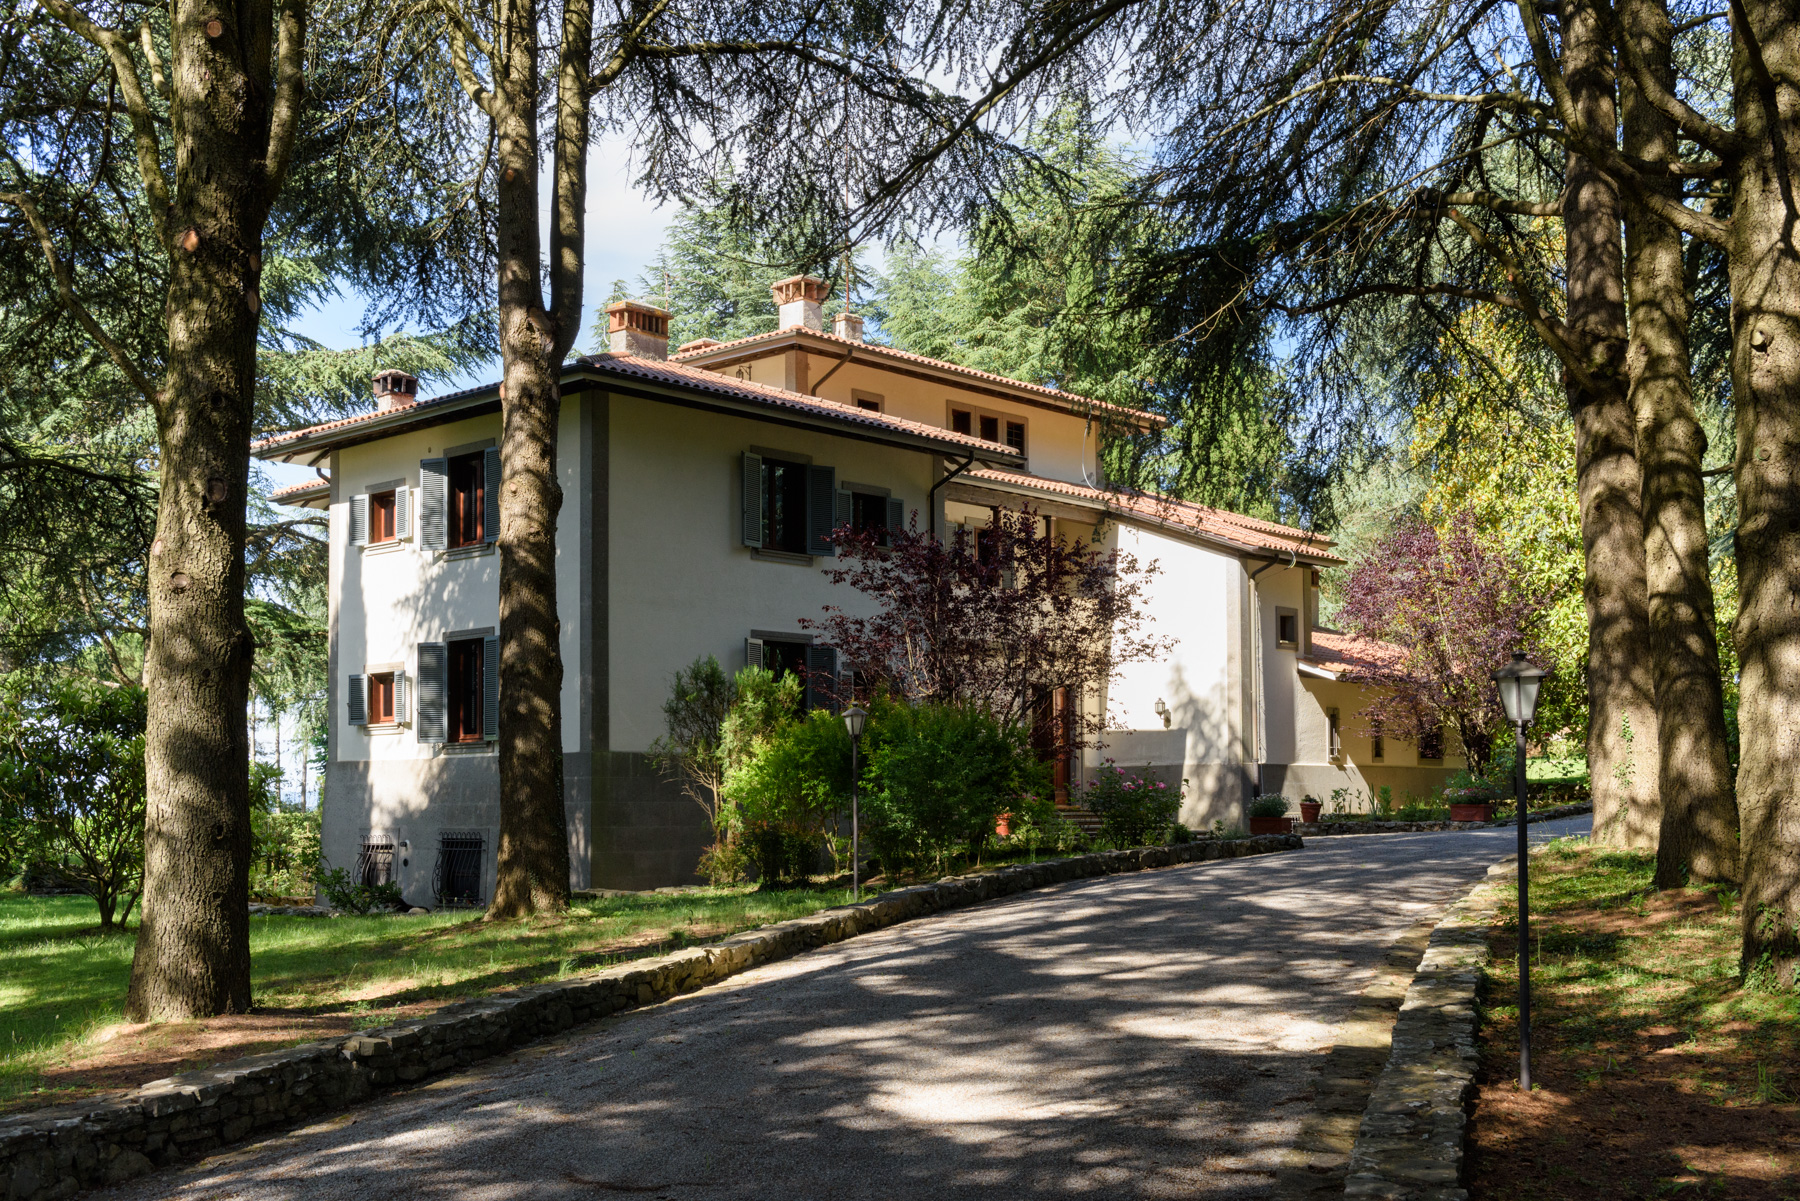 Single Family Home for Sale at Splendid villa in the Tuscan-Umbrian hills Citta Della Pieve, Perugia Italy